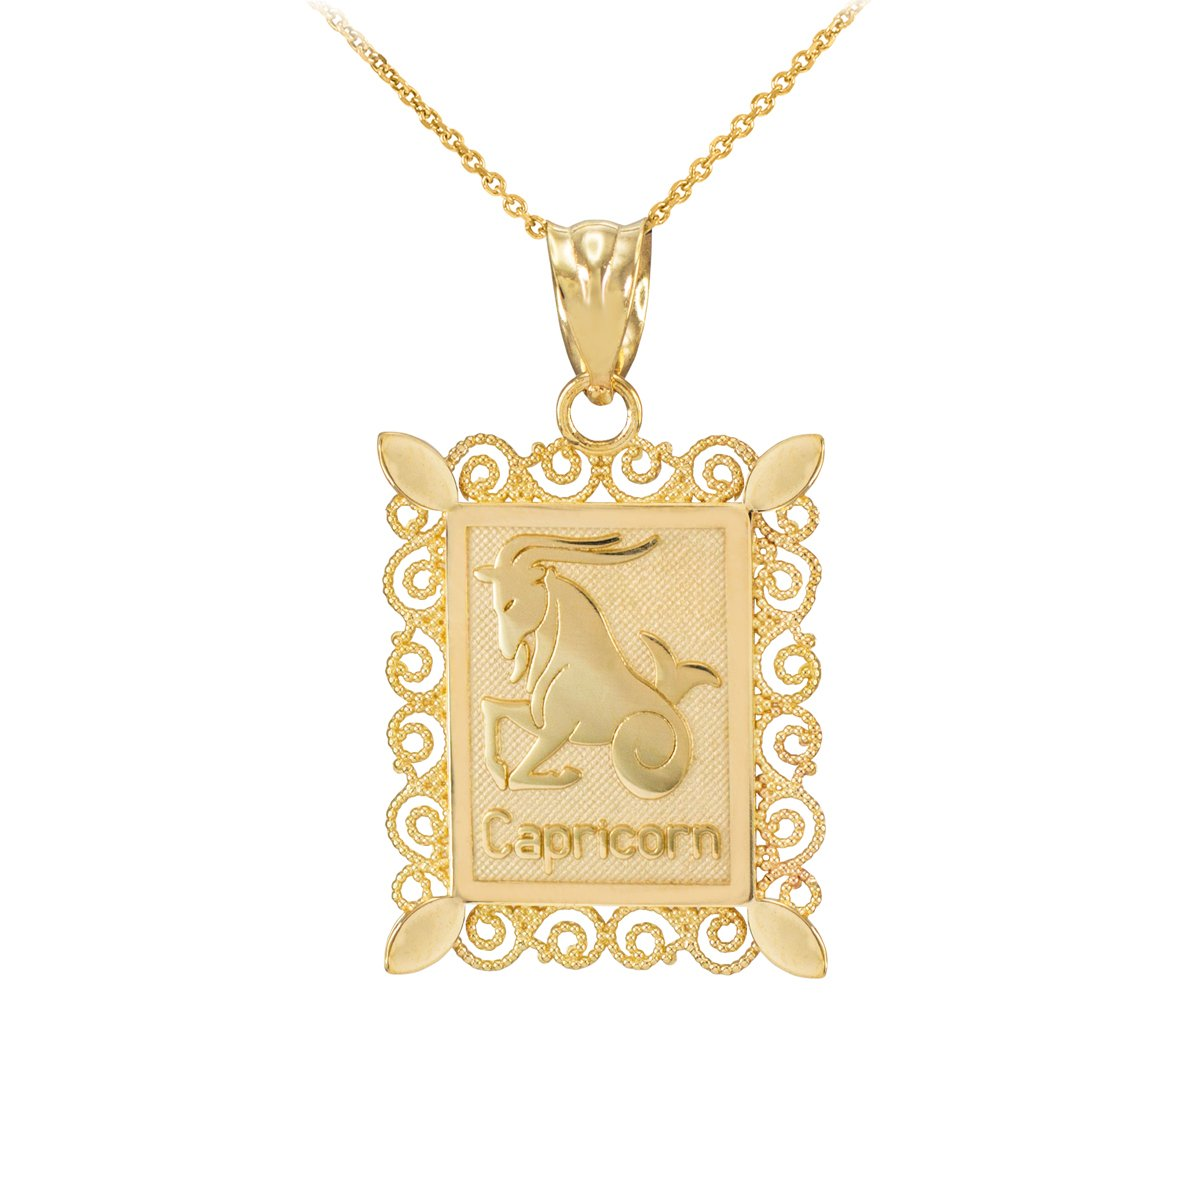 Fine 10k Yellow Gold Filigree-Style Rectangular Frame Capricorn Zodiac Sign Pendant Necklace, 20'' by Astrology Jewelry